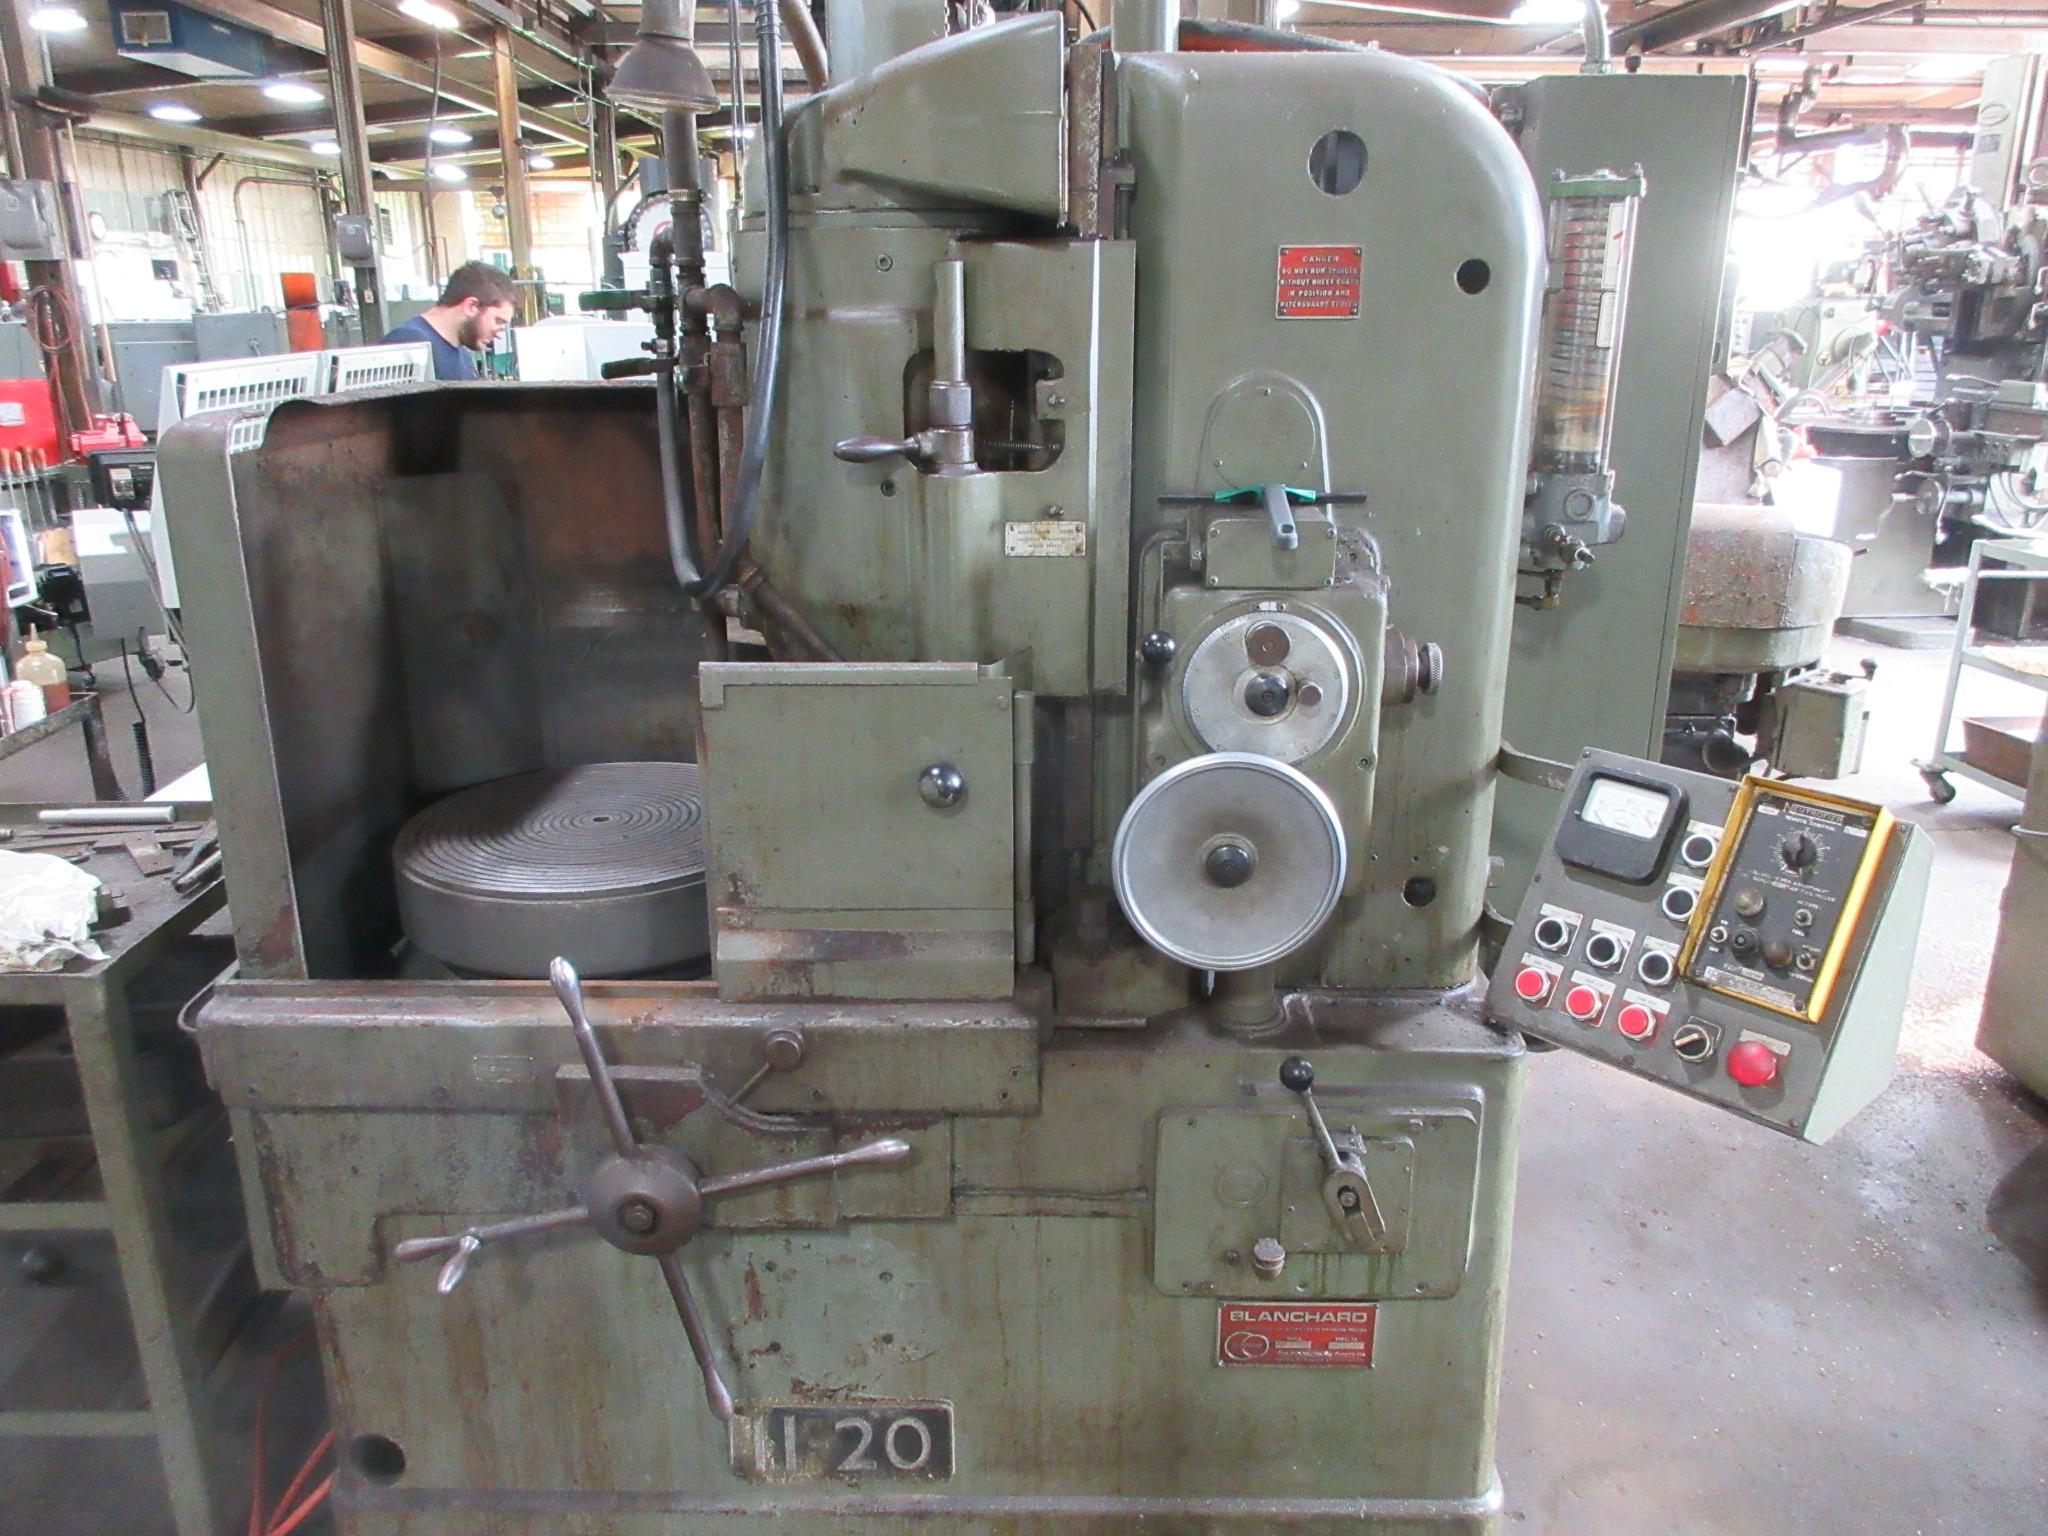 "Blanchard # 11-20, 20"" Diameter Vertical Spindle Rotary Surface Grinder"